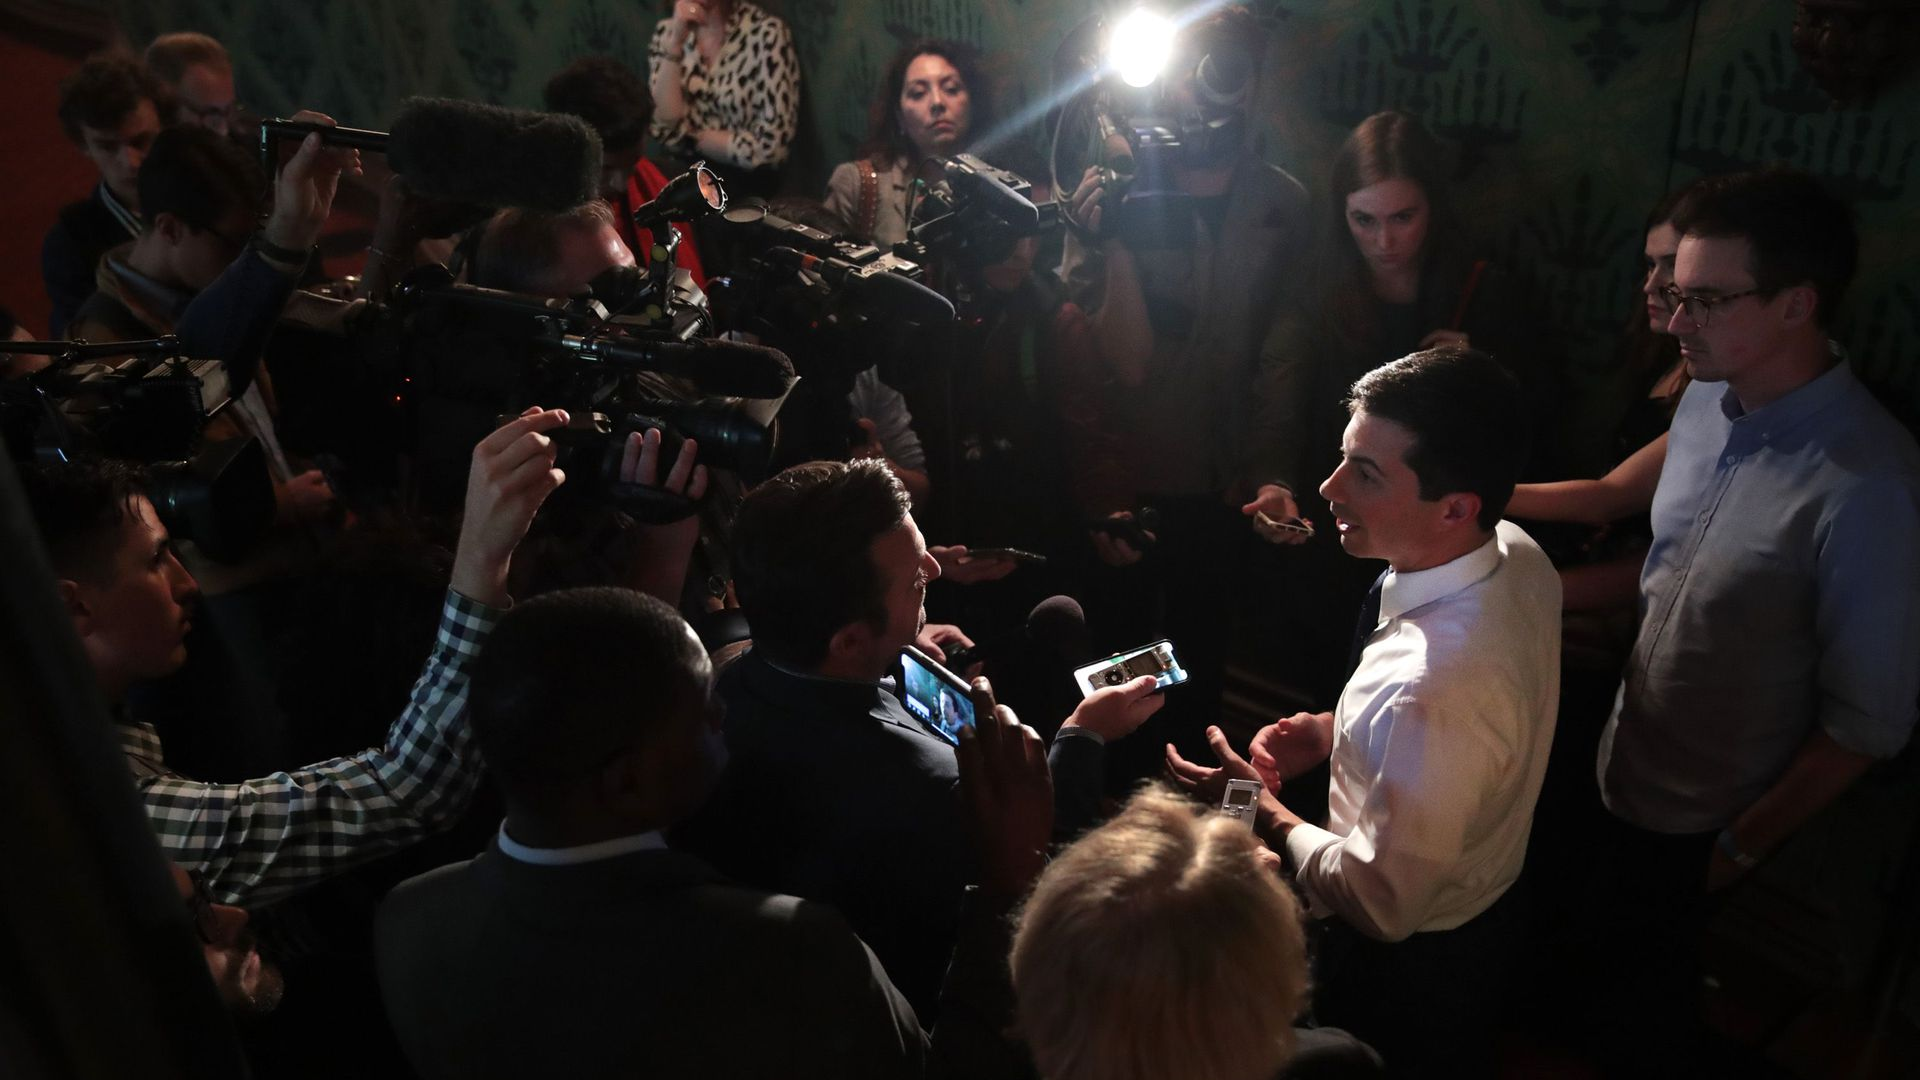 Pete Buttigieg fields questions after speaking at the University of Chicago on Oct. 18.